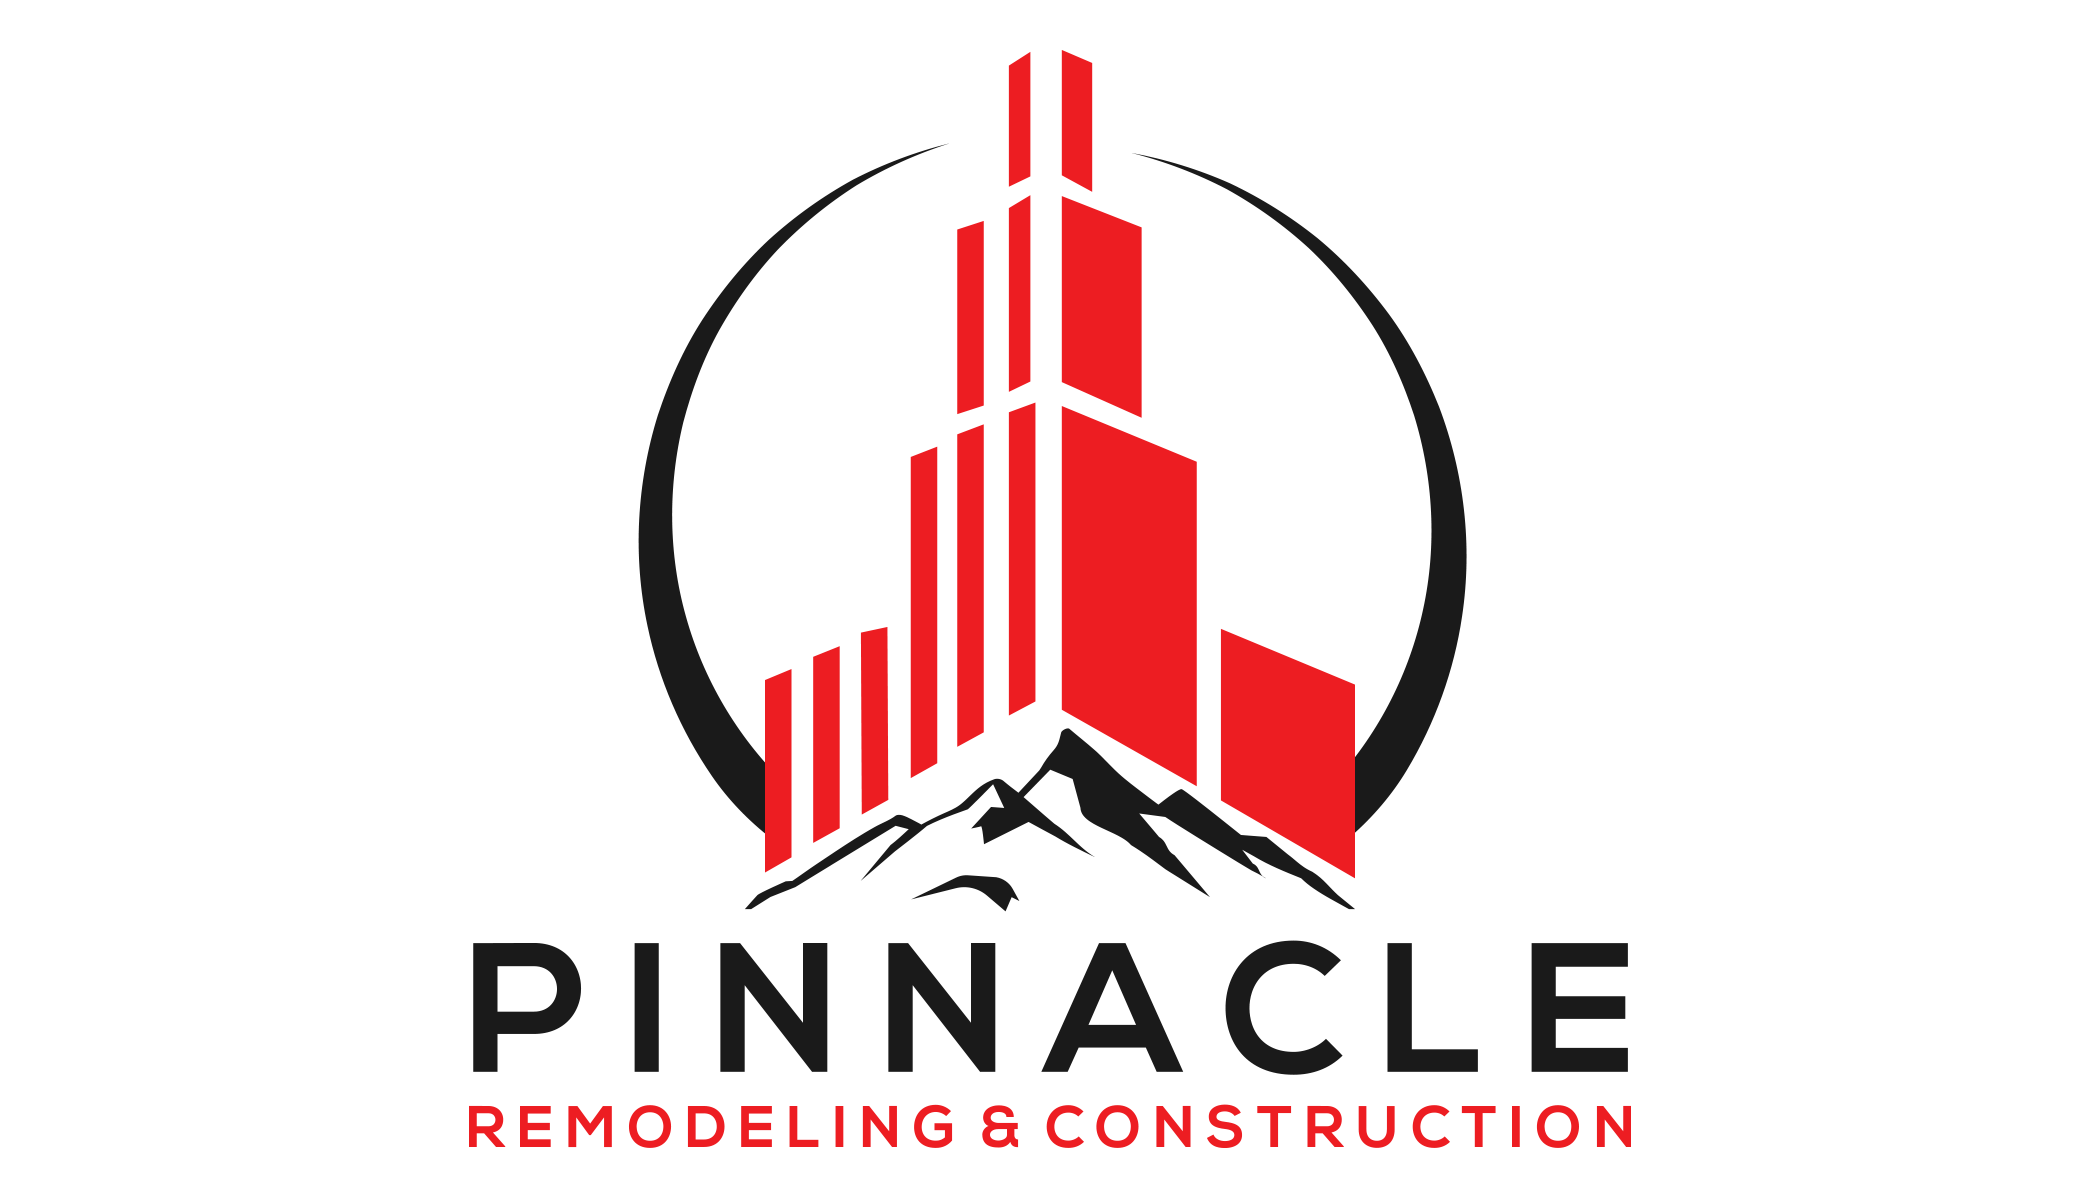 Pinnacle Remodeling and Construction